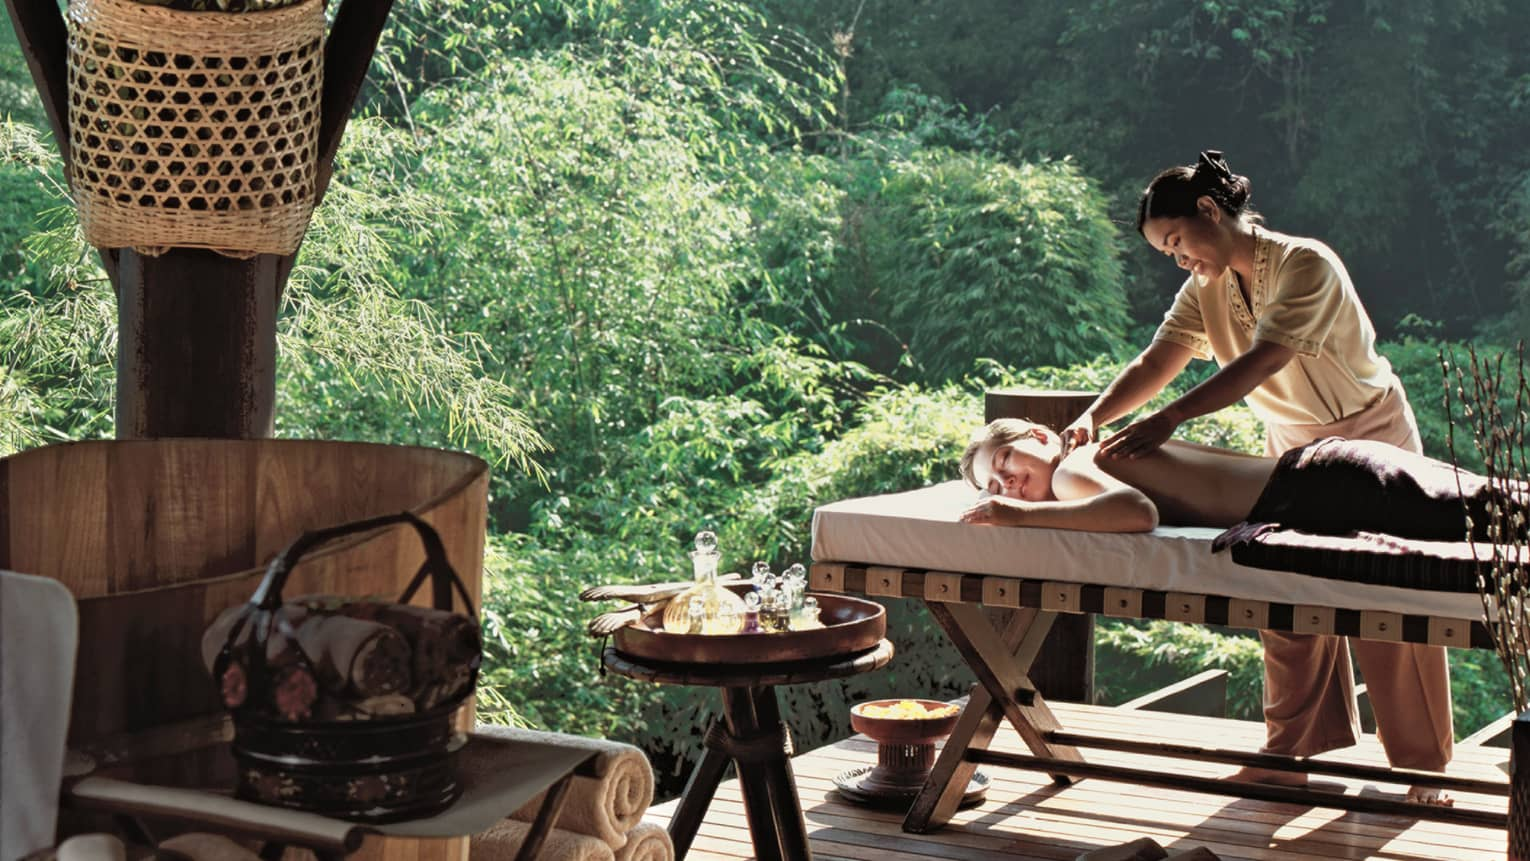 A four seasons staff massages a man in an outdoor spa room